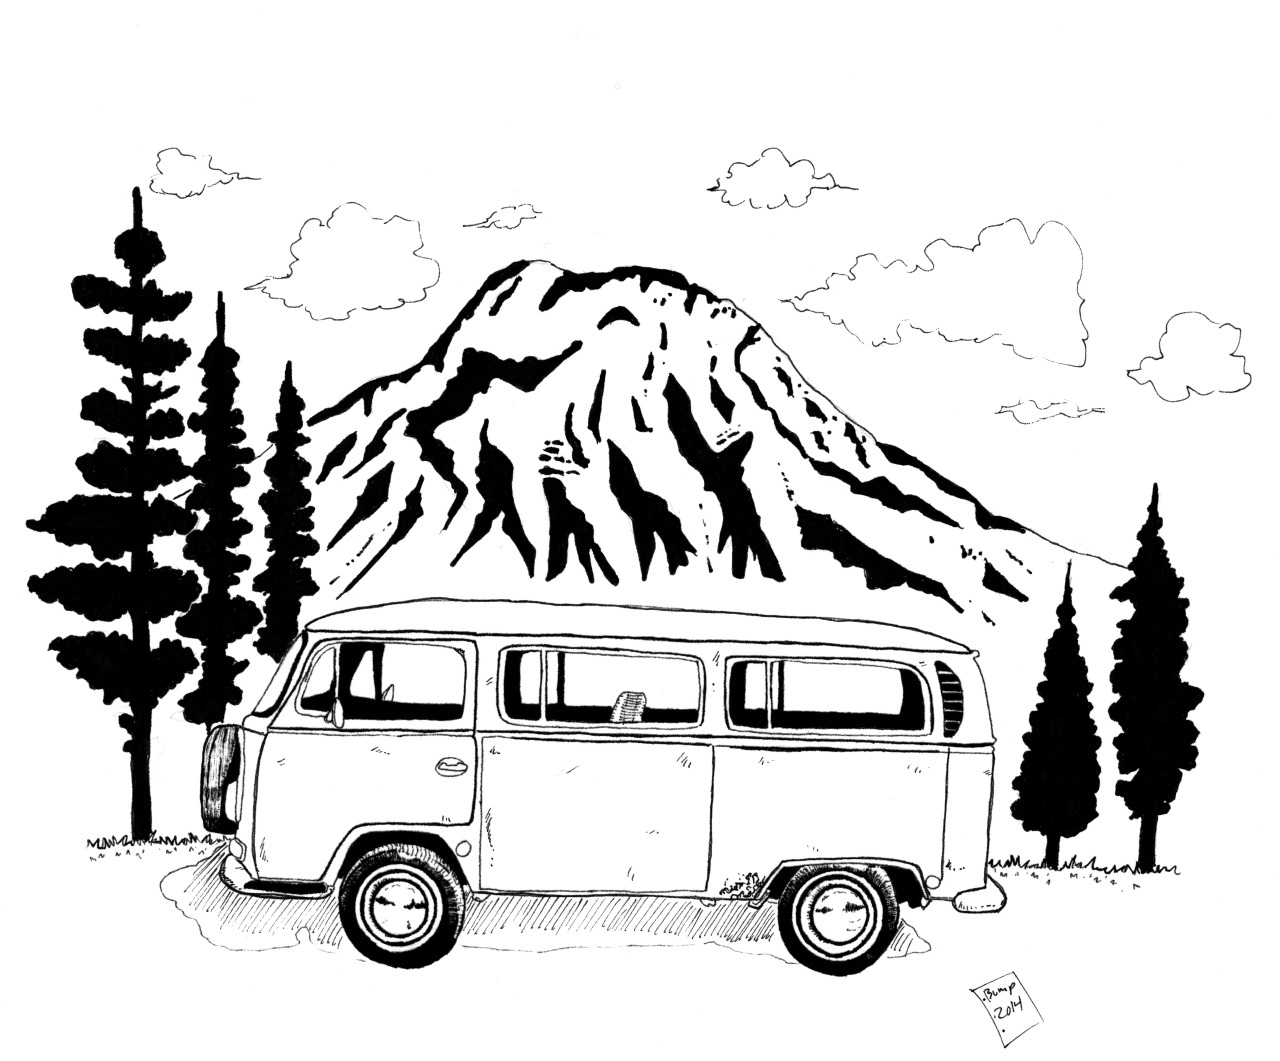 Volkswagen Bus Drawing at GetDrawings.com   Free for personal use ...